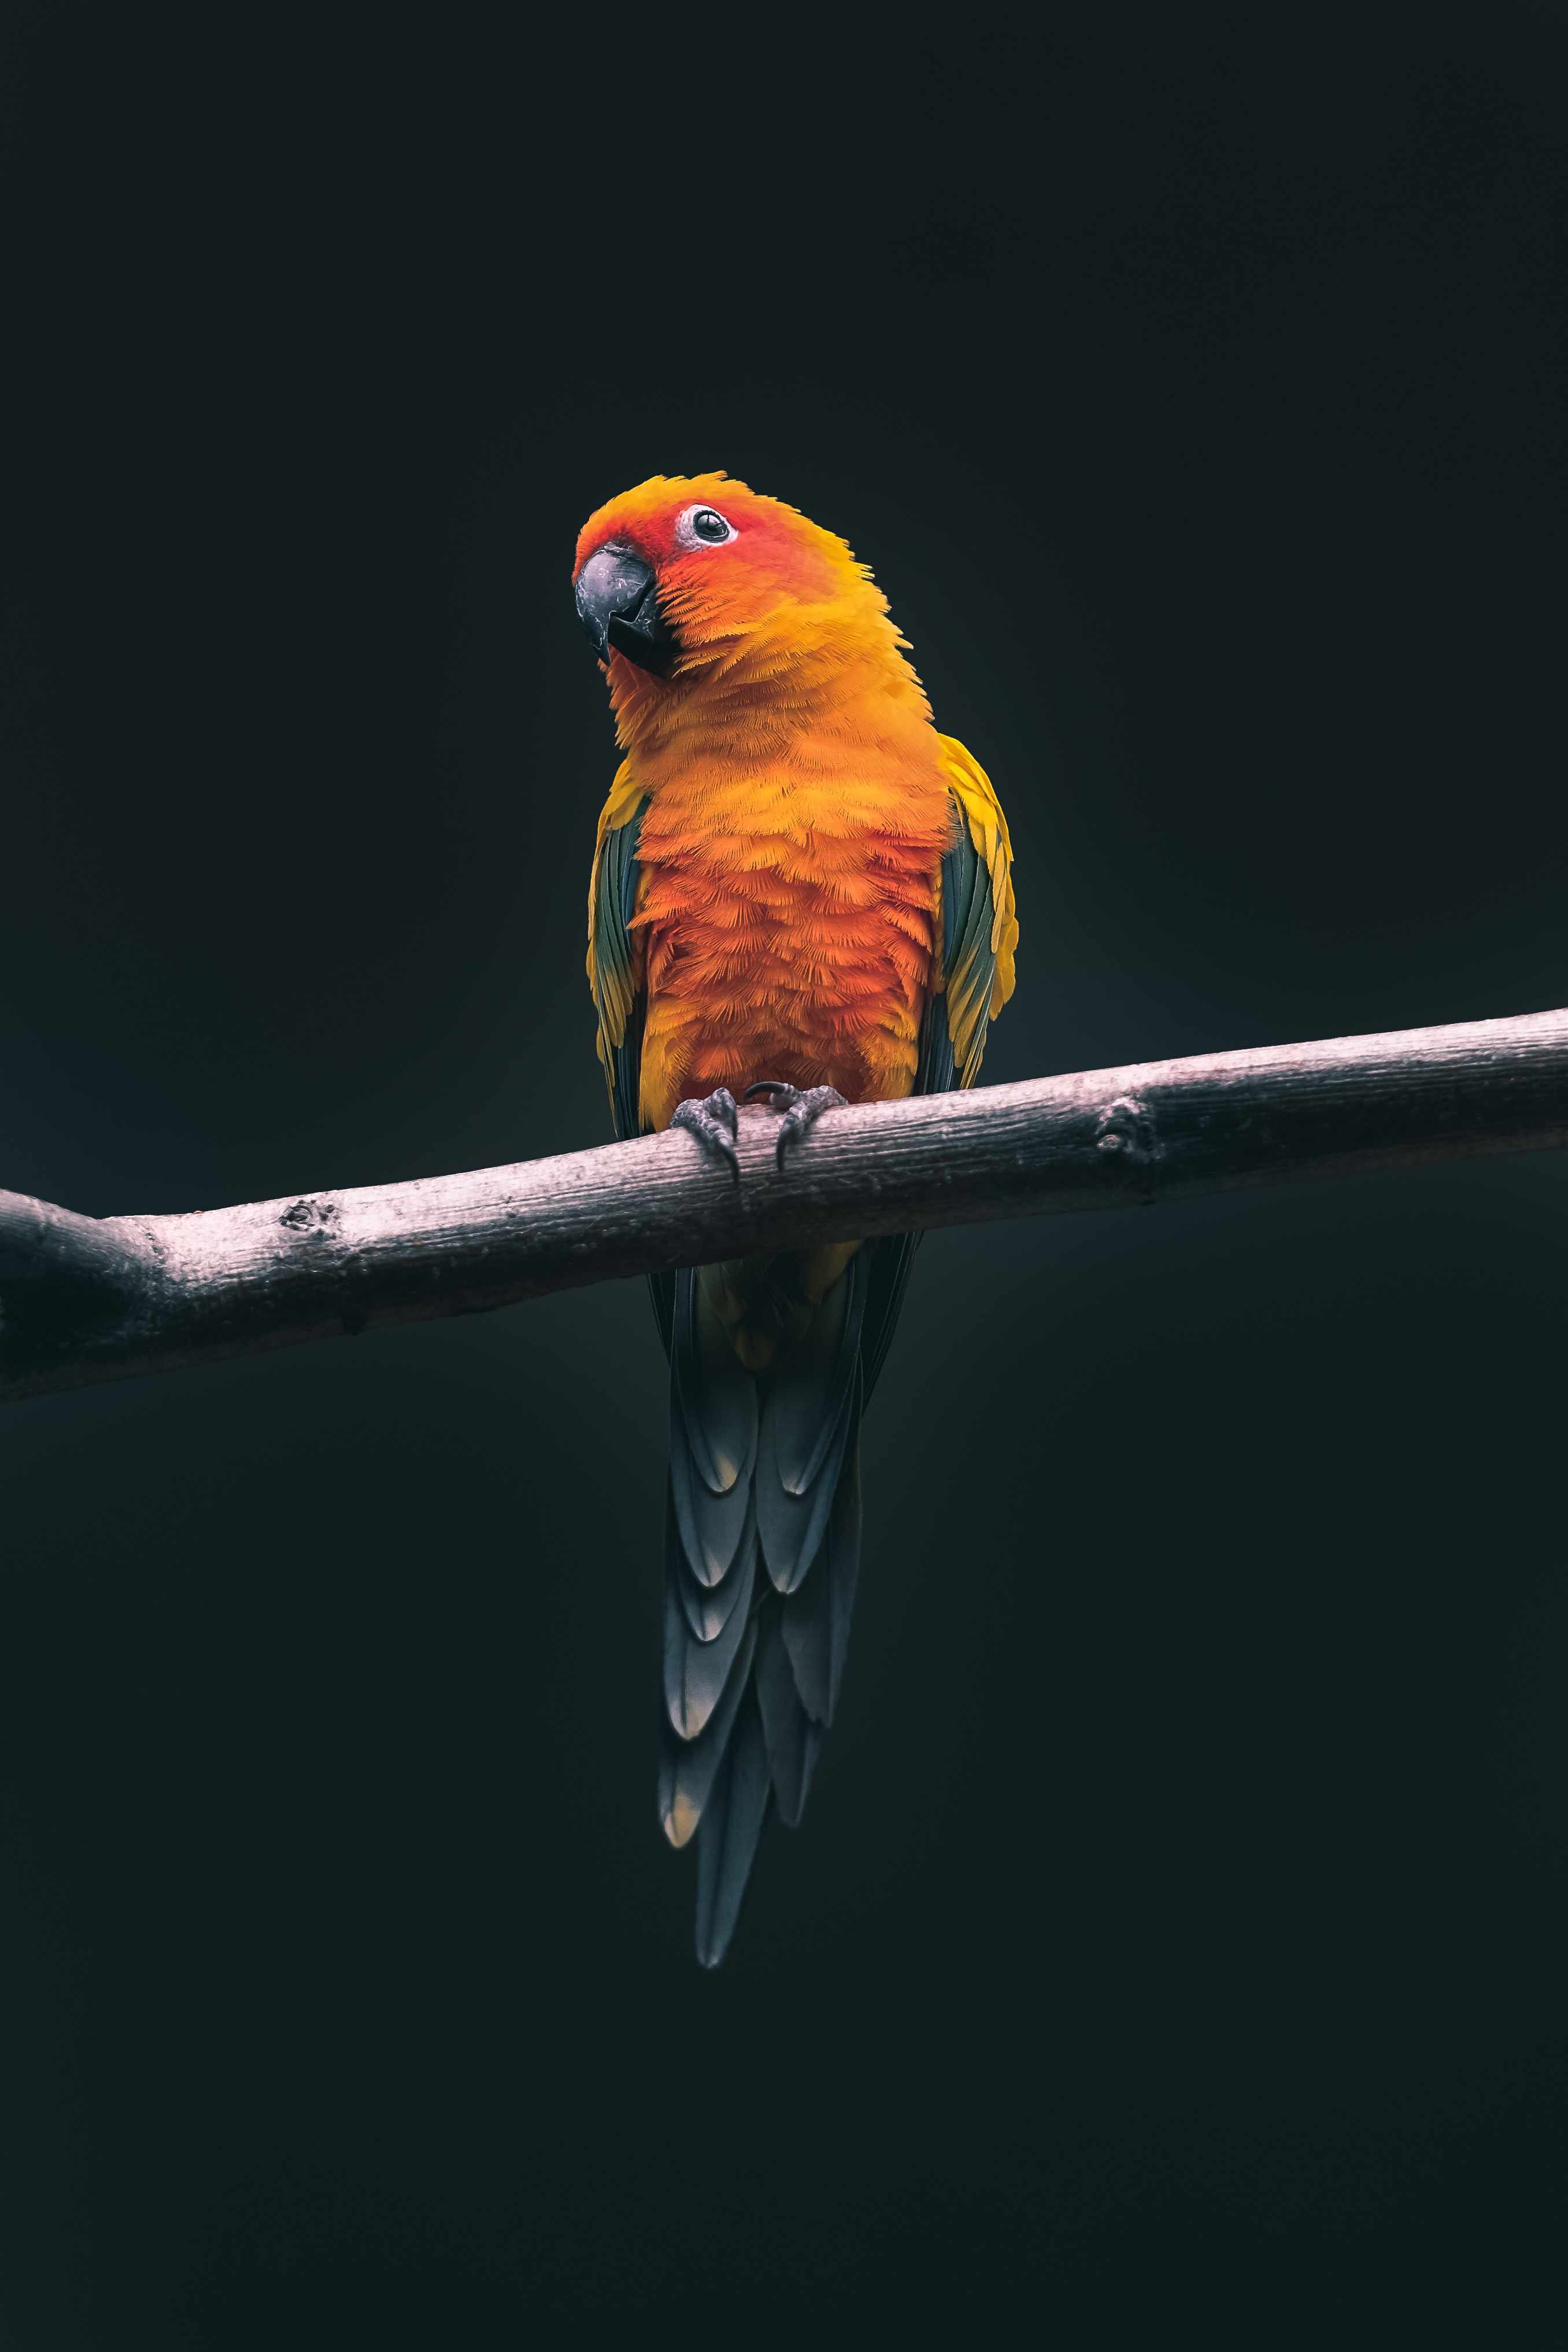 A colourful parrot sitting on a branch